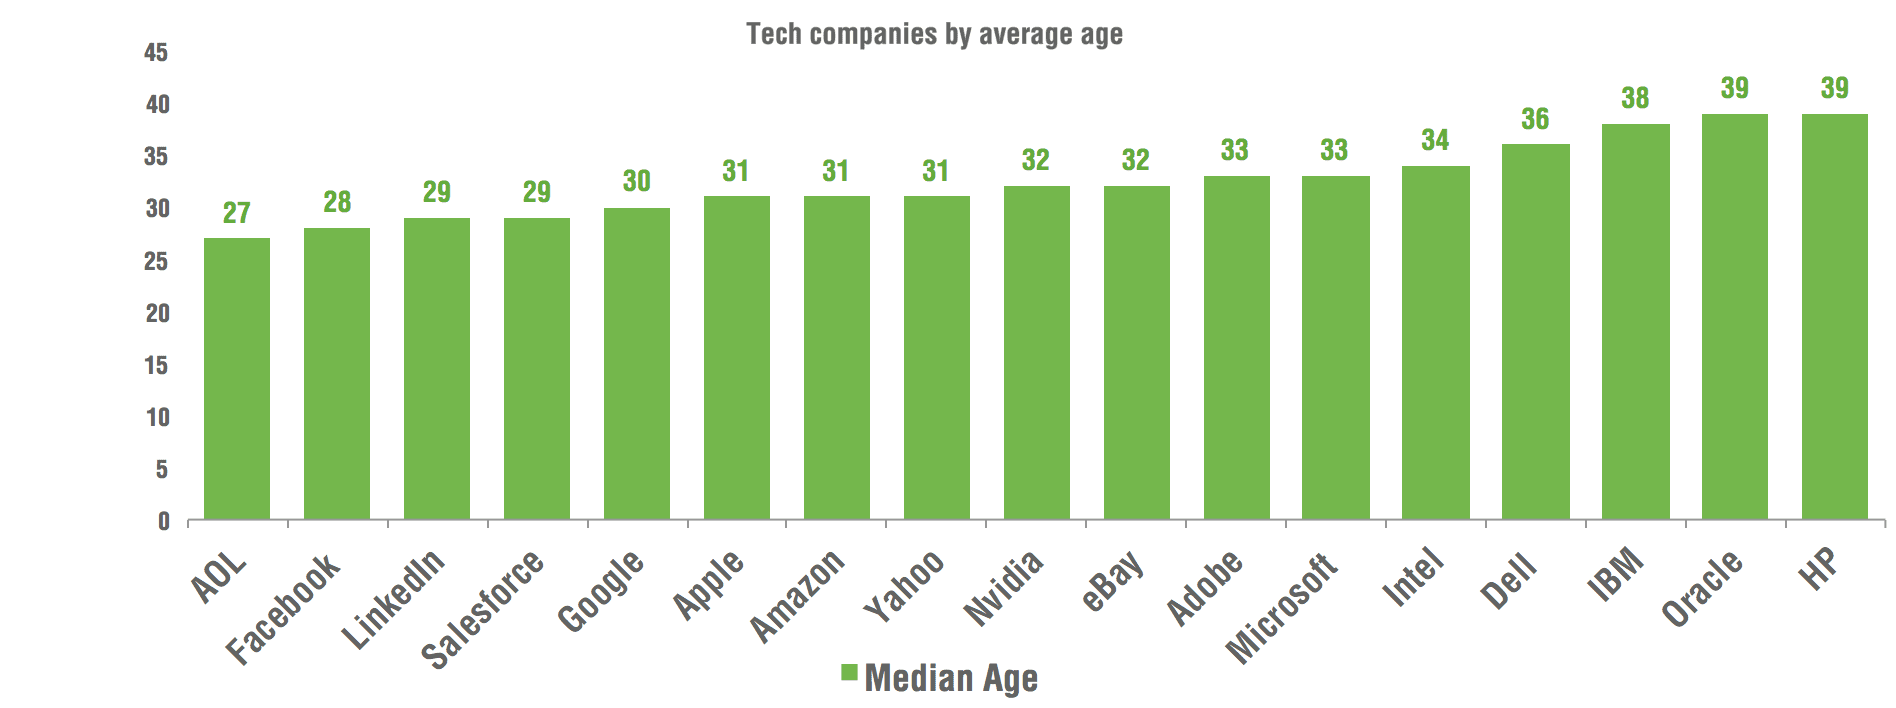 Average age of tech companys employees chartoftheday smart average age by tech company nvjuhfo Choice Image